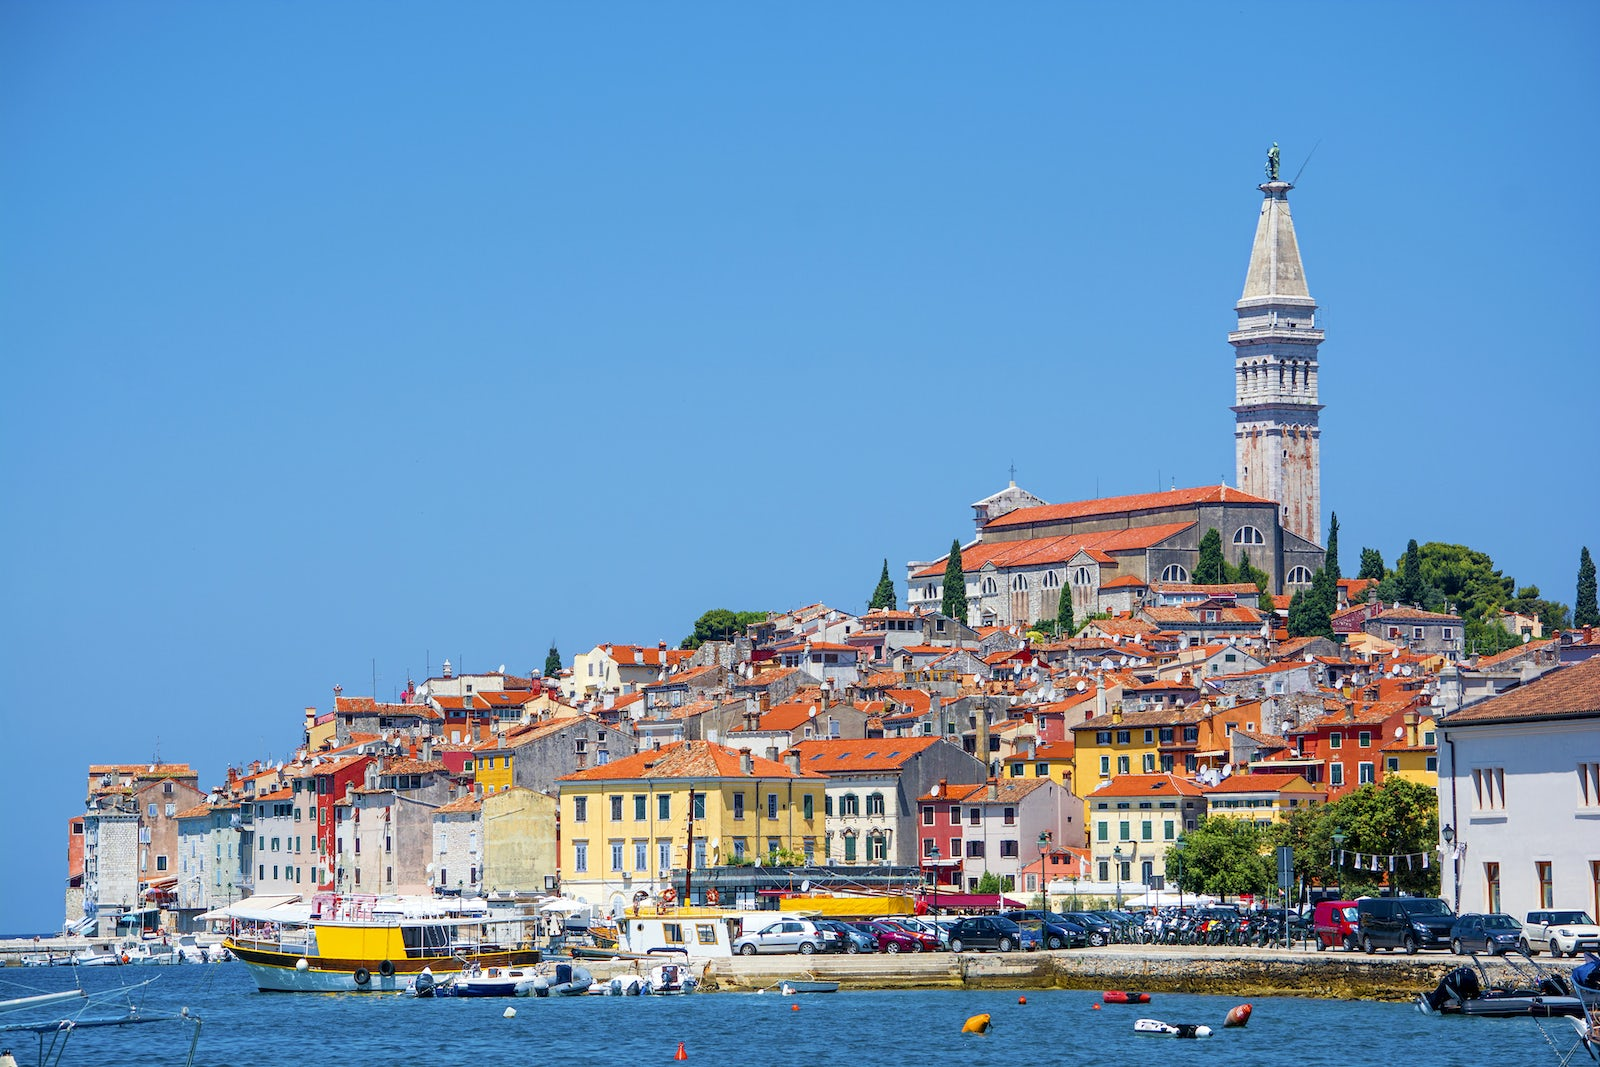 !i18n:es:data.cities:rovinj.picture.caption